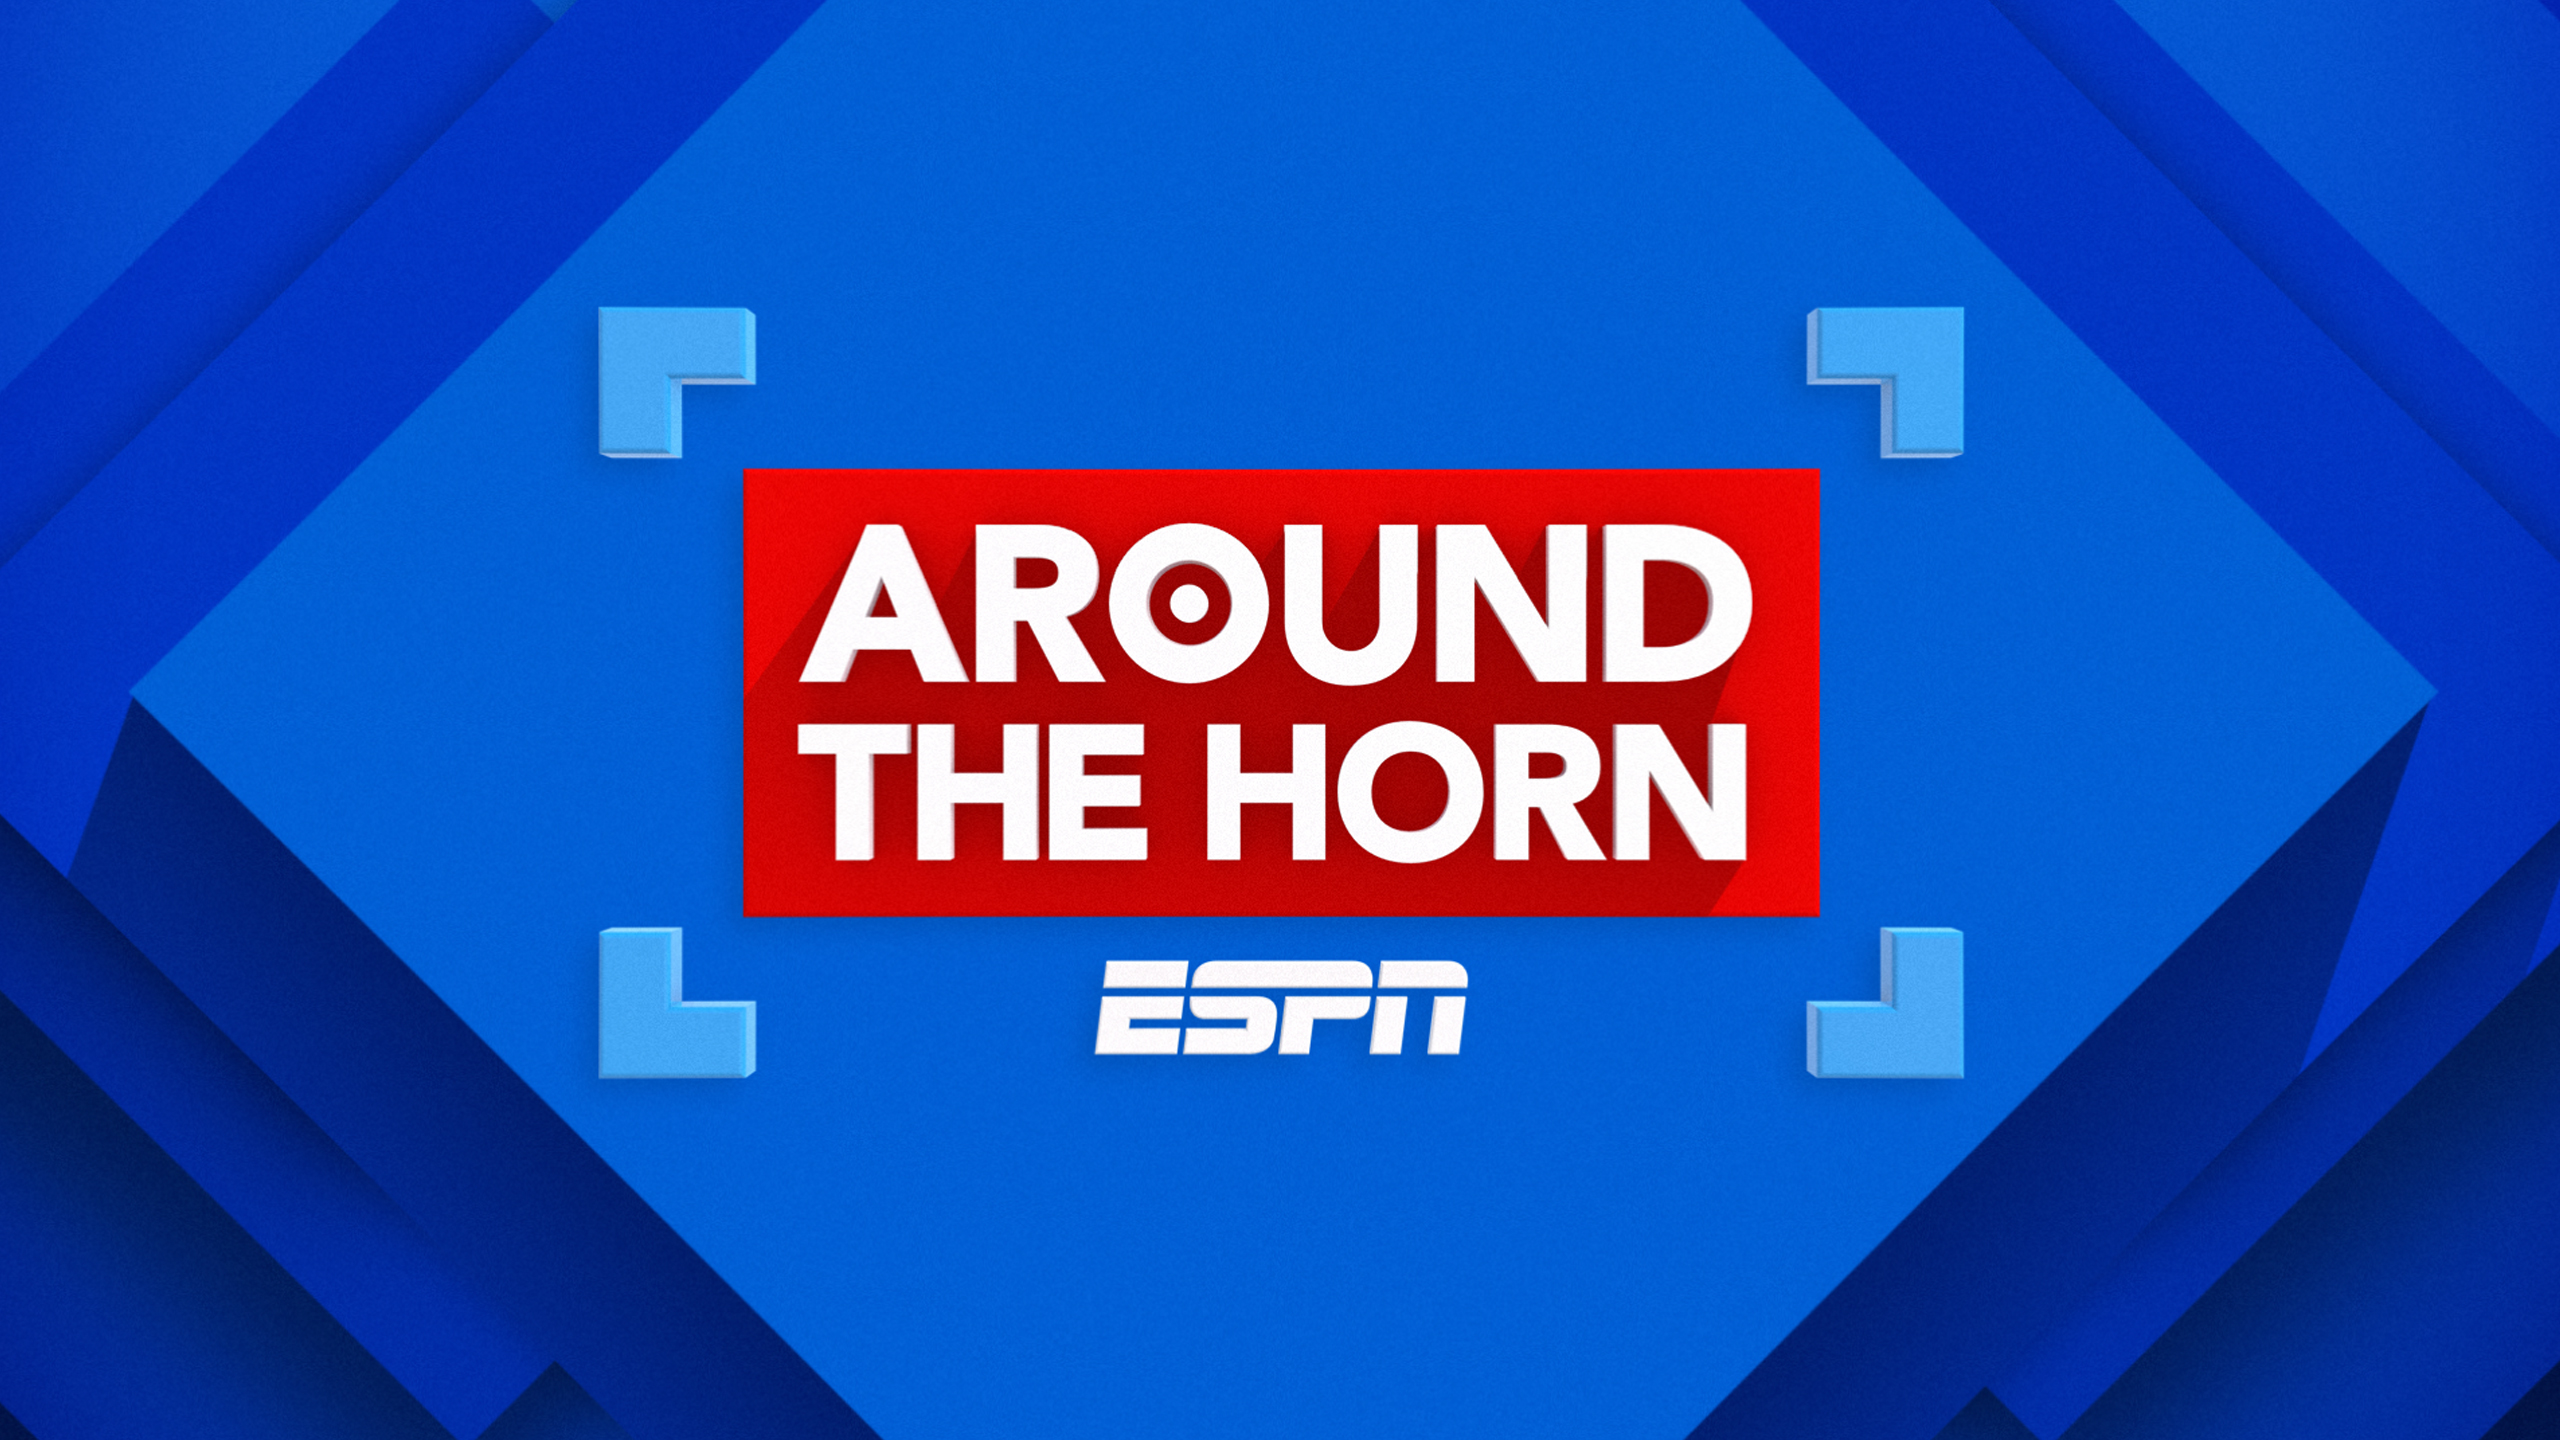 Fri, 9/21 - Around The Horn